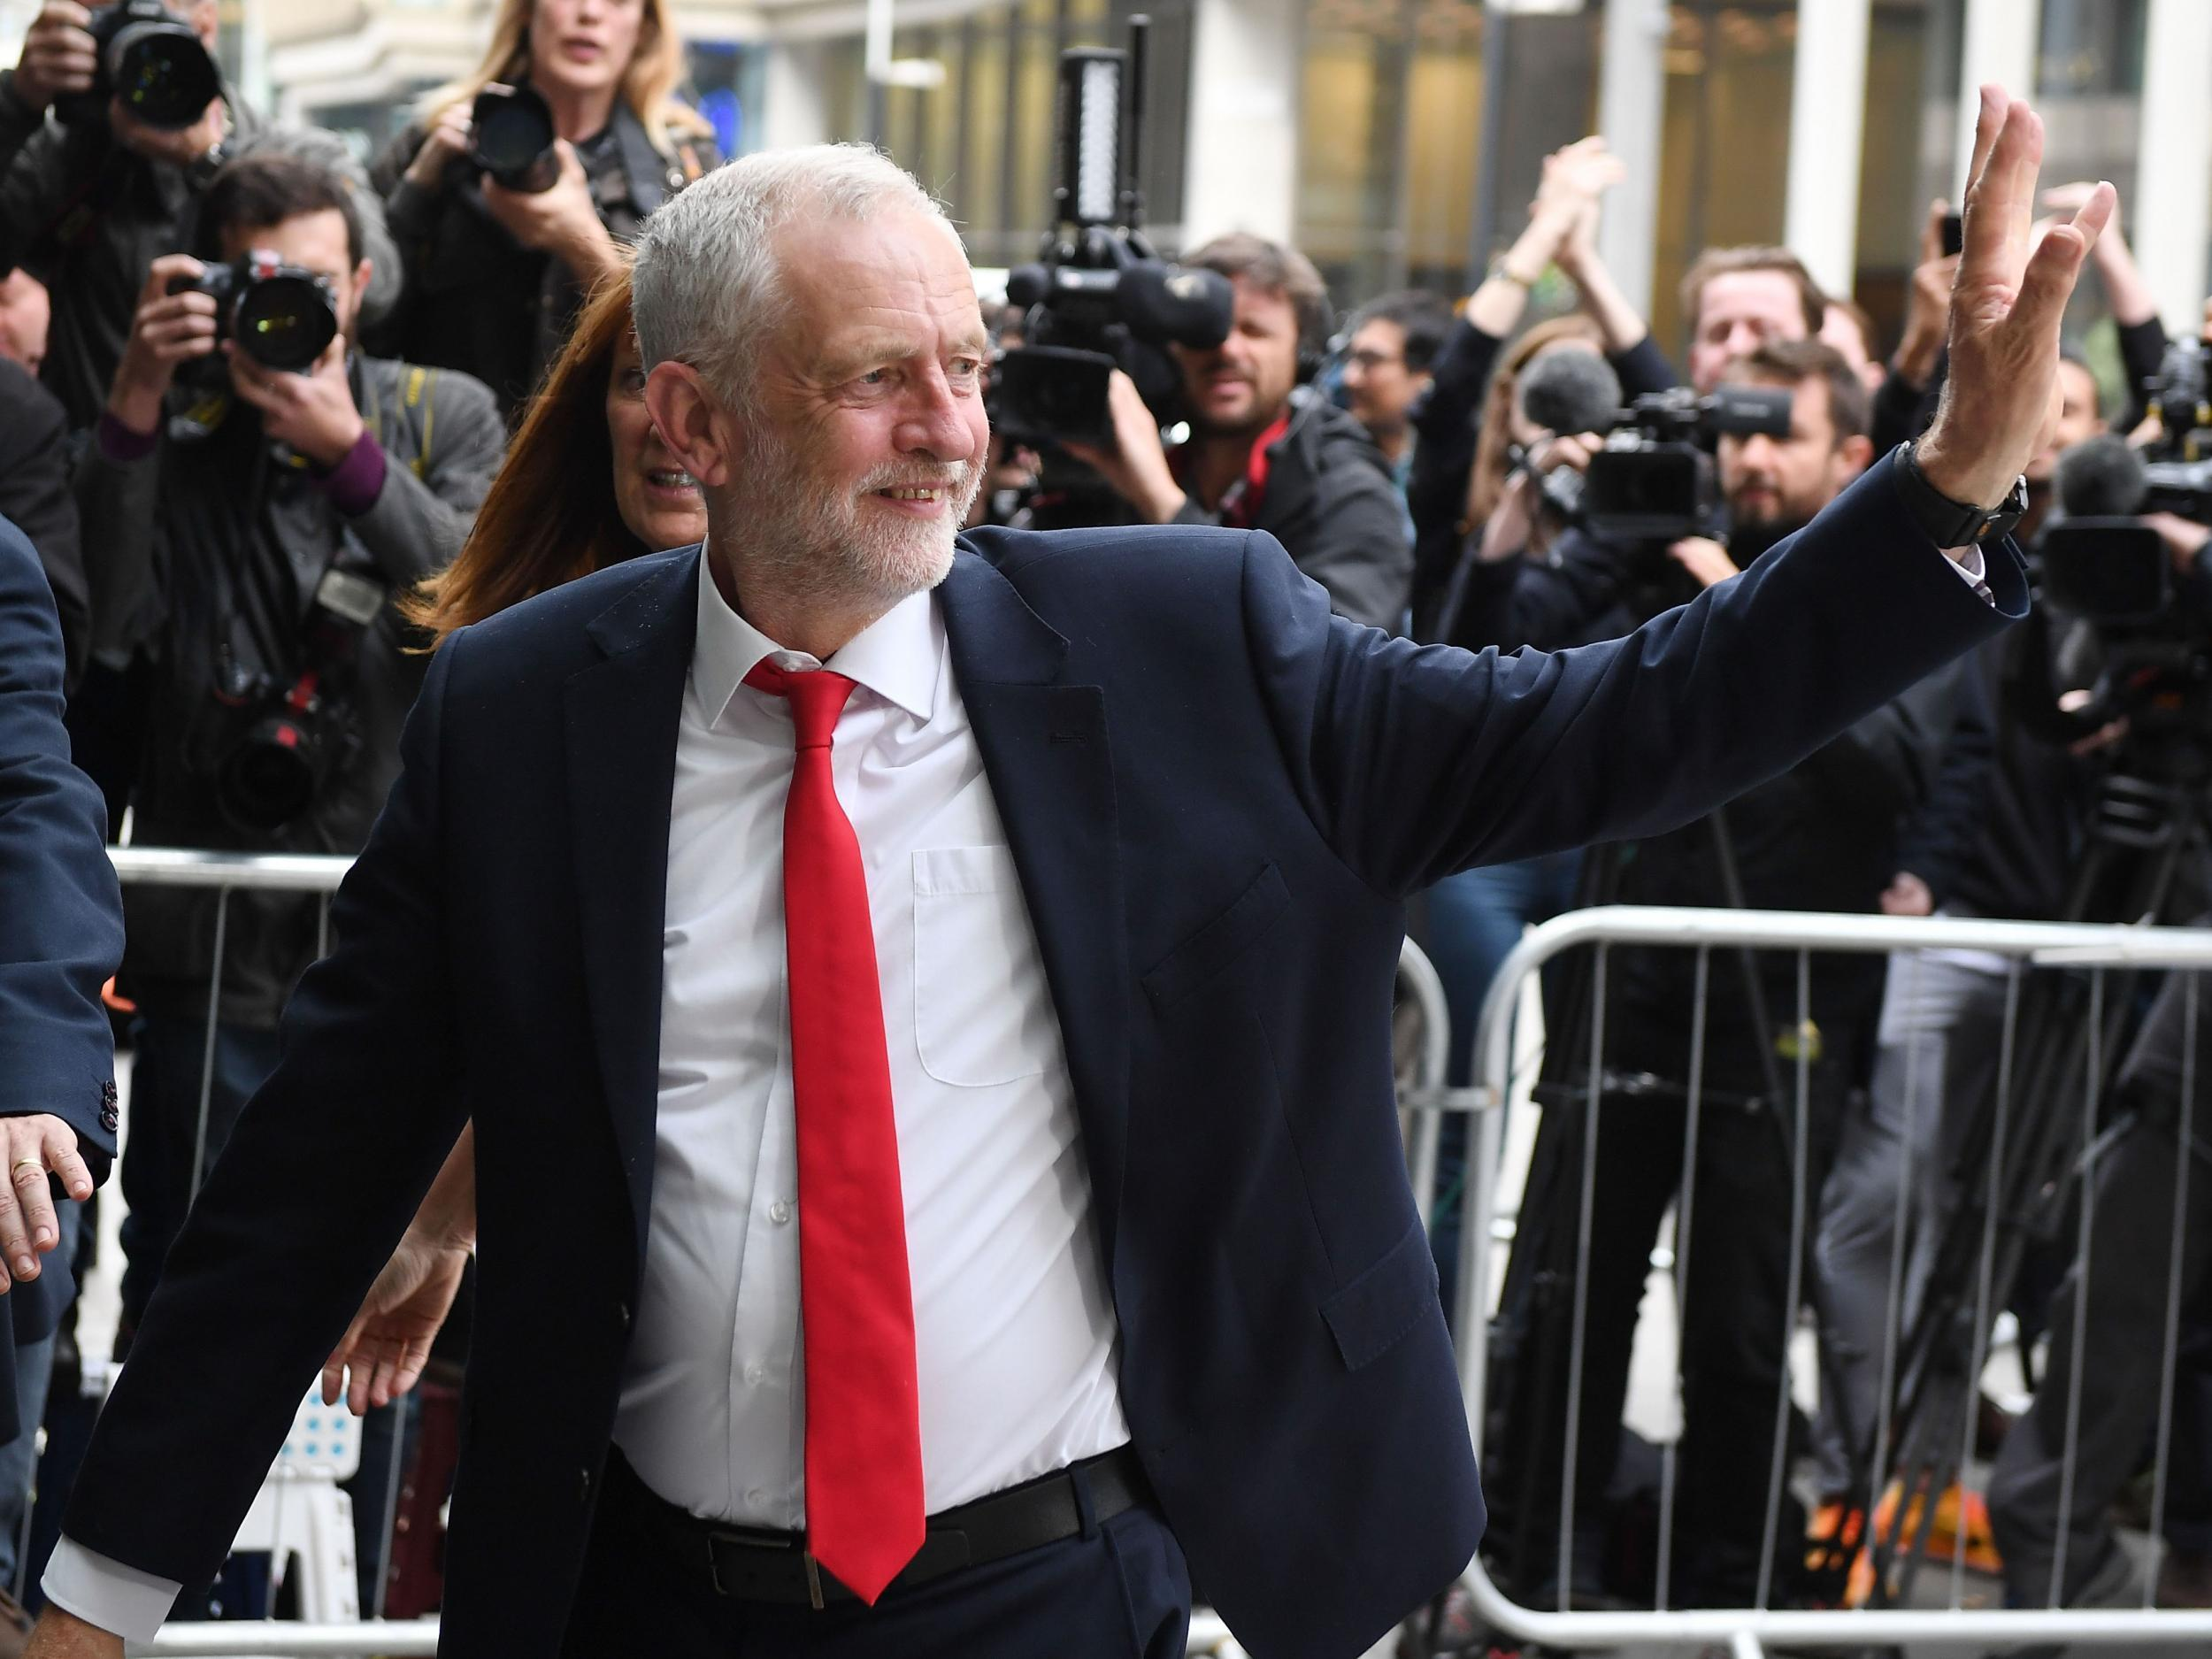 Corbyn strengthens his grip on his party as critics change their tune